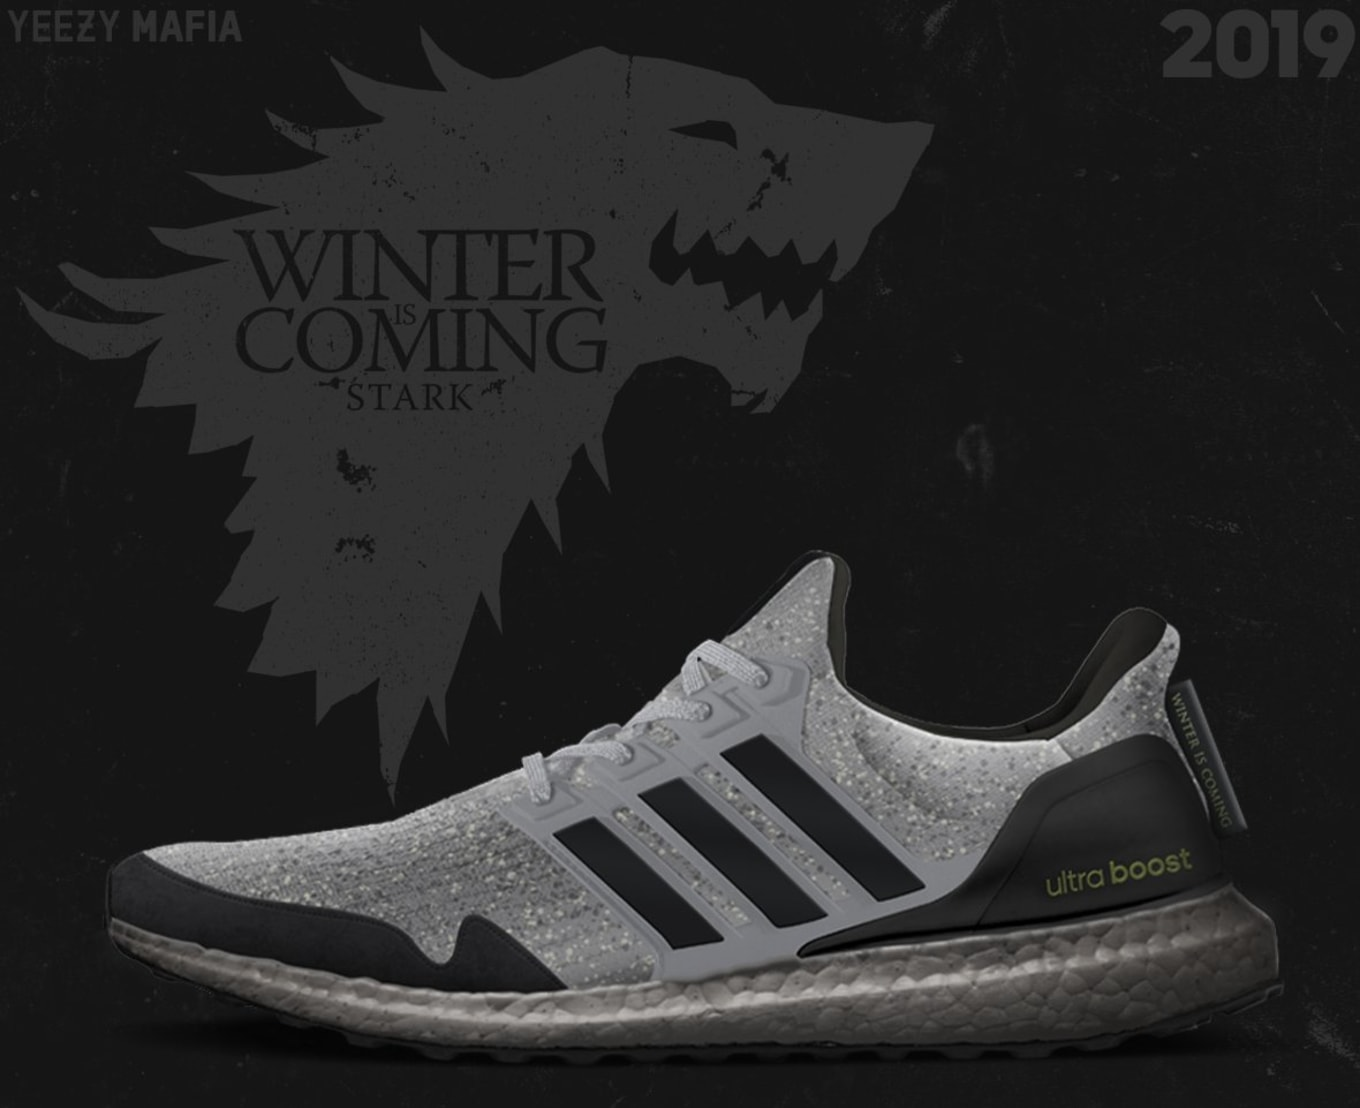 local Artefacto doloroso  Game of Thrones x Adidas Ultra Boost Sneaker Collaboration 2019 | Sole  Collector